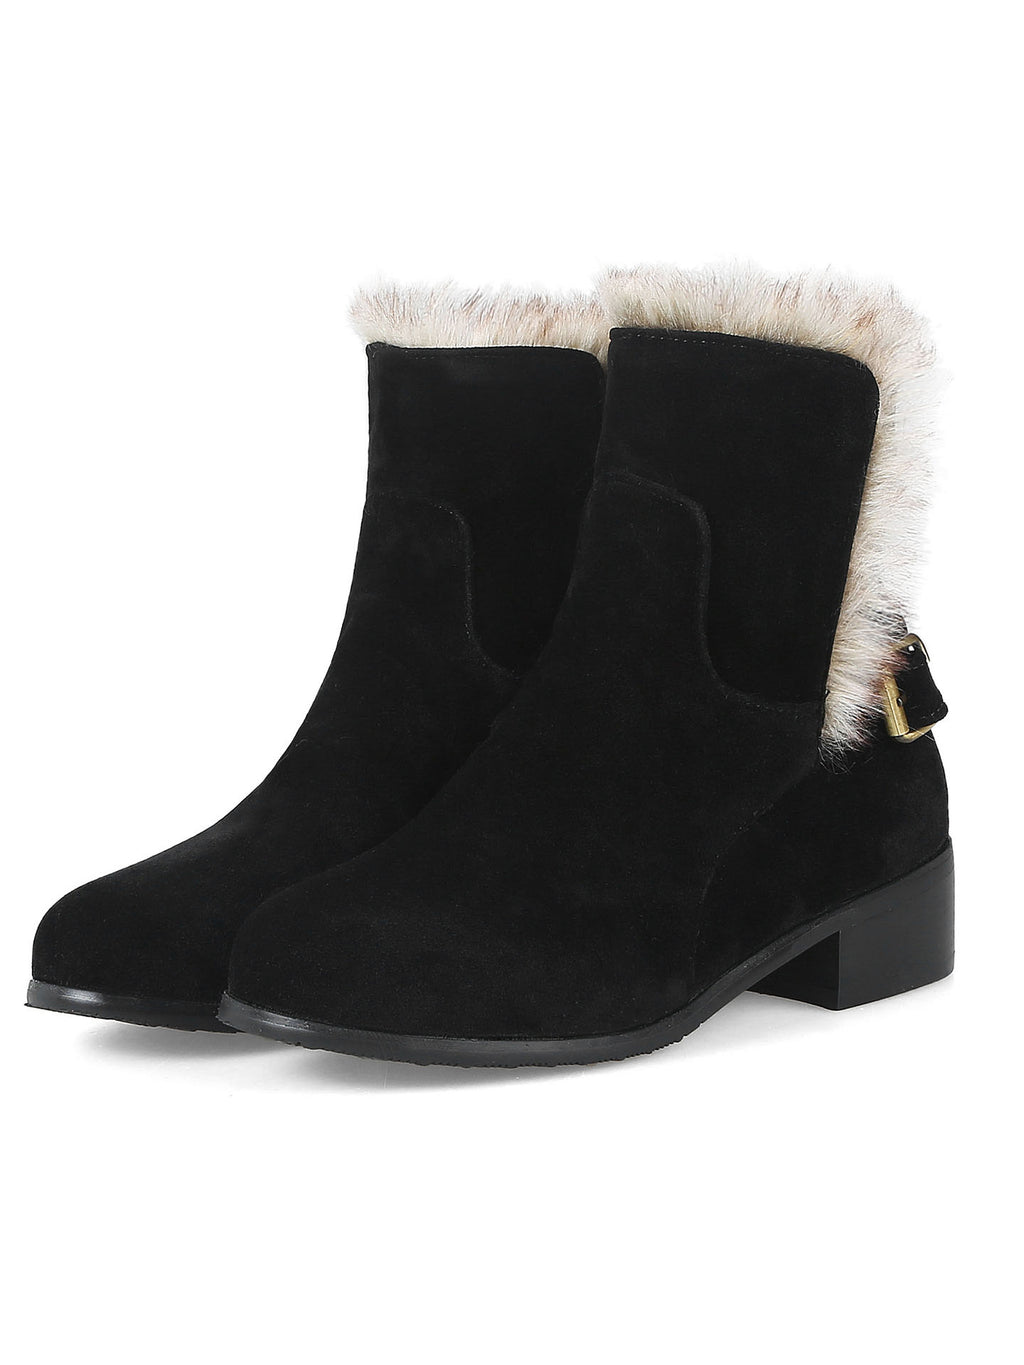 Flat Bottom Round Head High To Help Women Warm Bare Boots Autumn and Winter New Fashion Wild Trend Boots